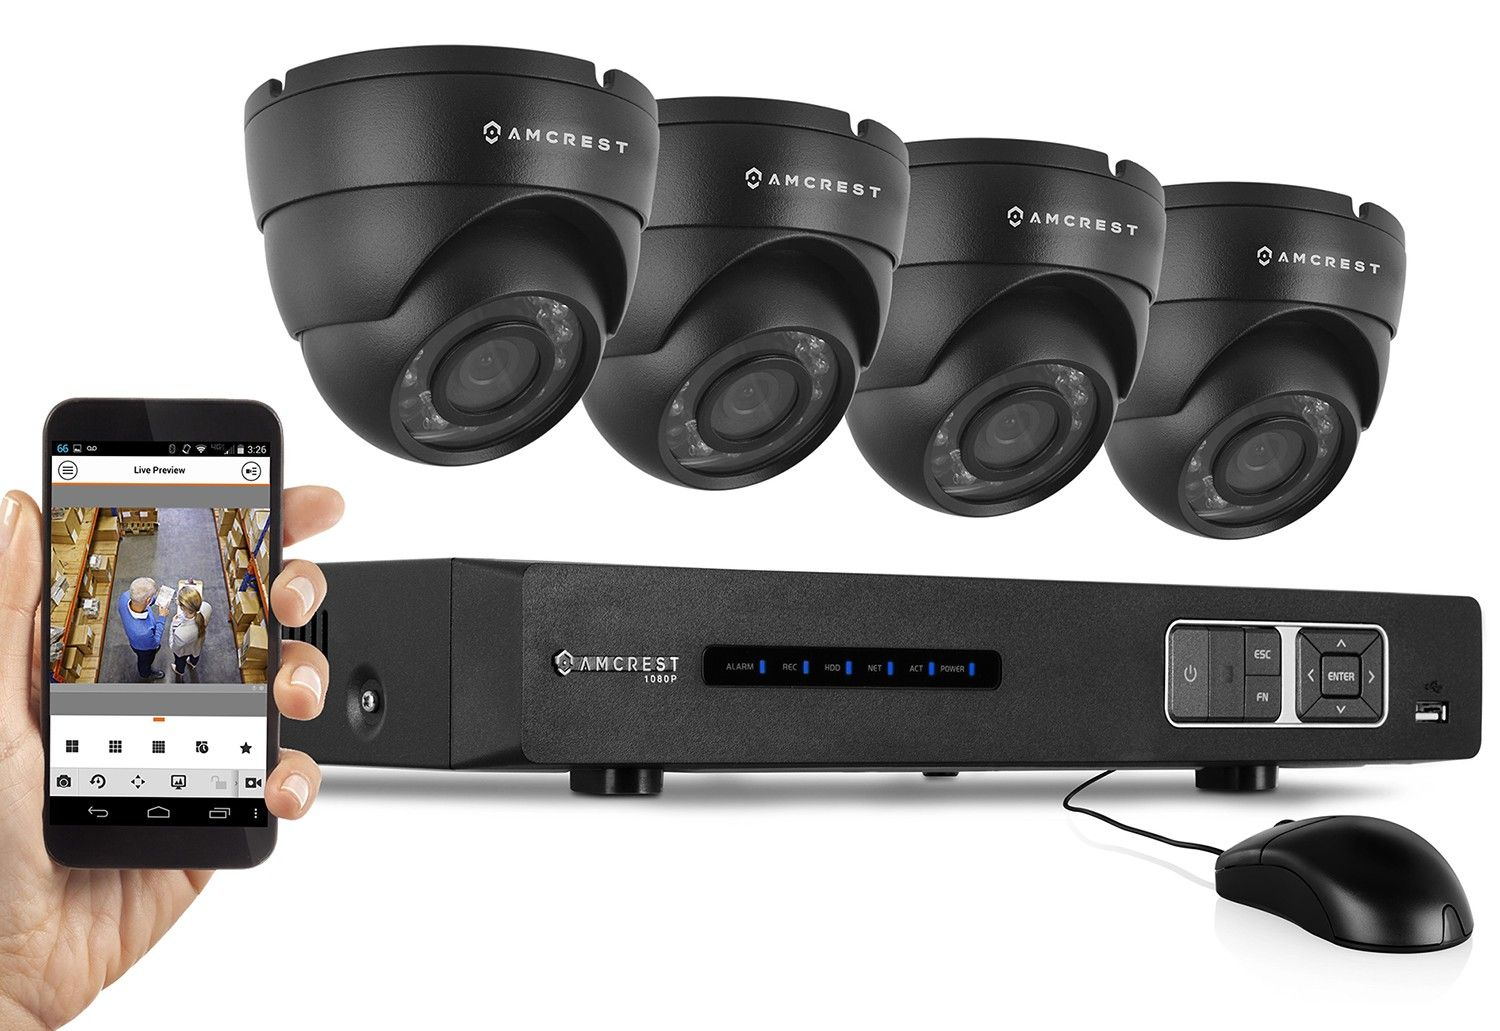 Read These Tips To Select The Best Security Camera Systems Best Security Cameras Video Security System Security Cameras For Home